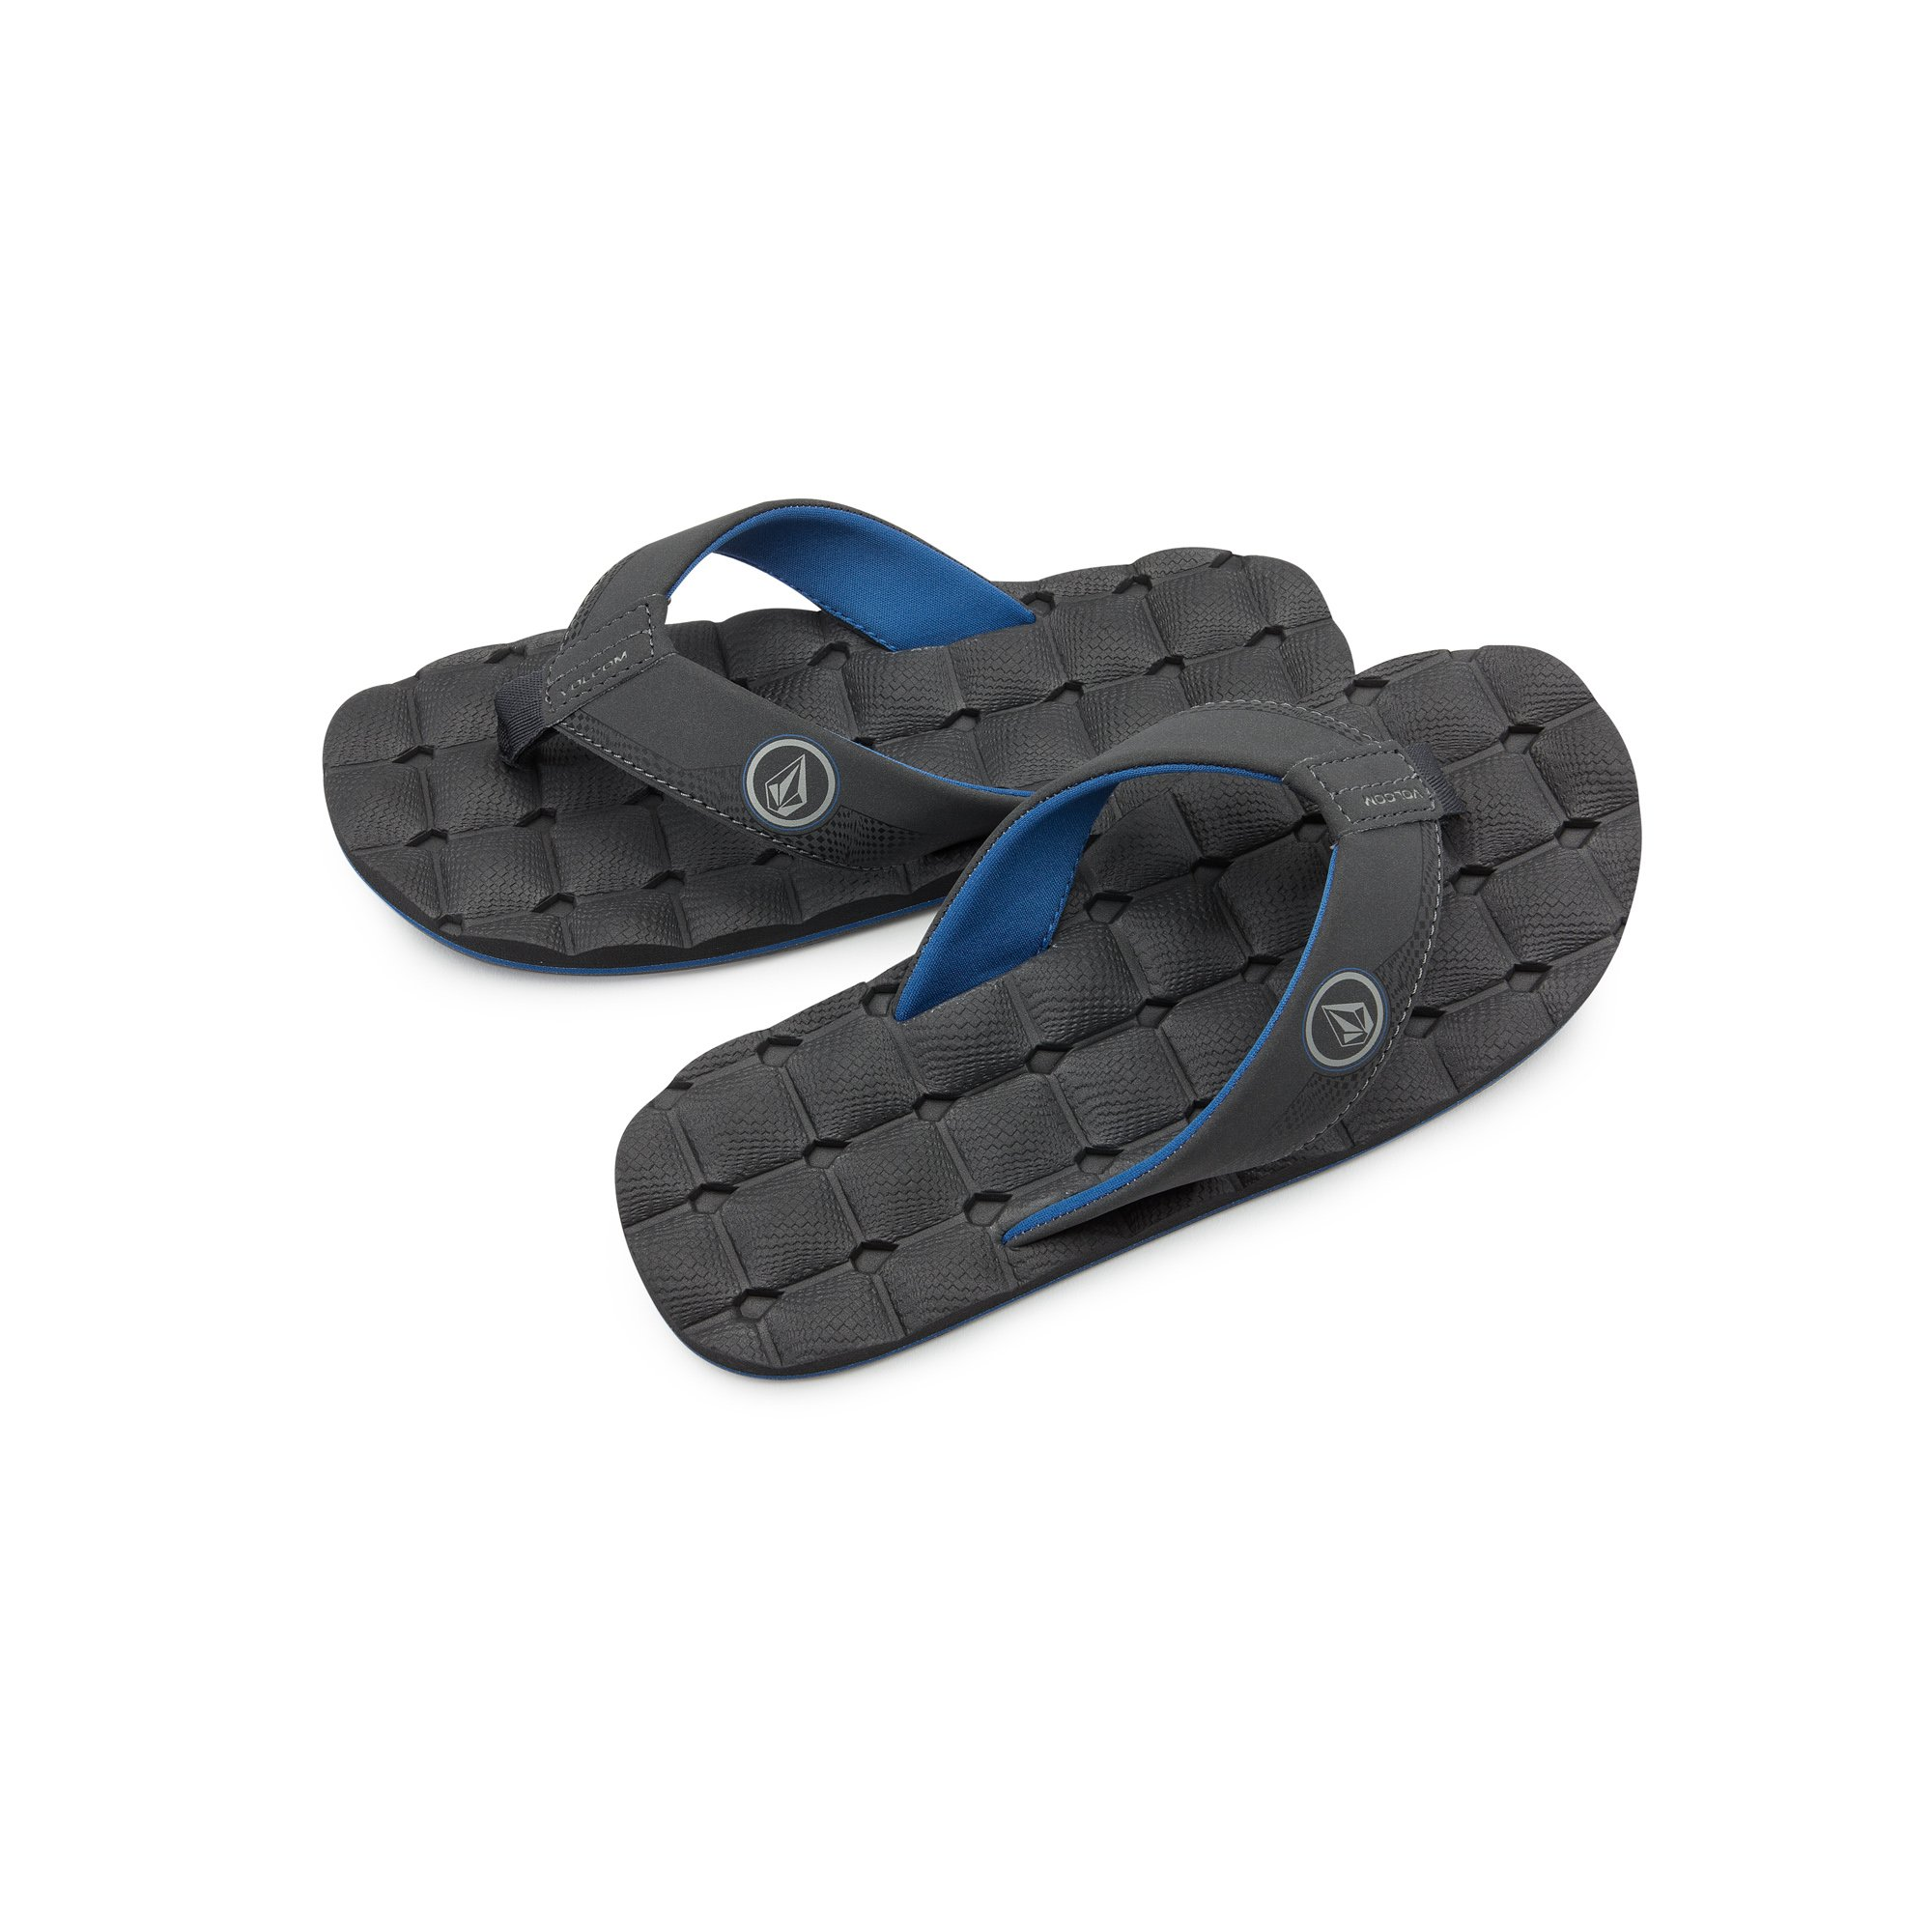 Volcom Boys' Recliner Youth Sandal Flip Flop, Blue Combo, 4 D US Big Kid